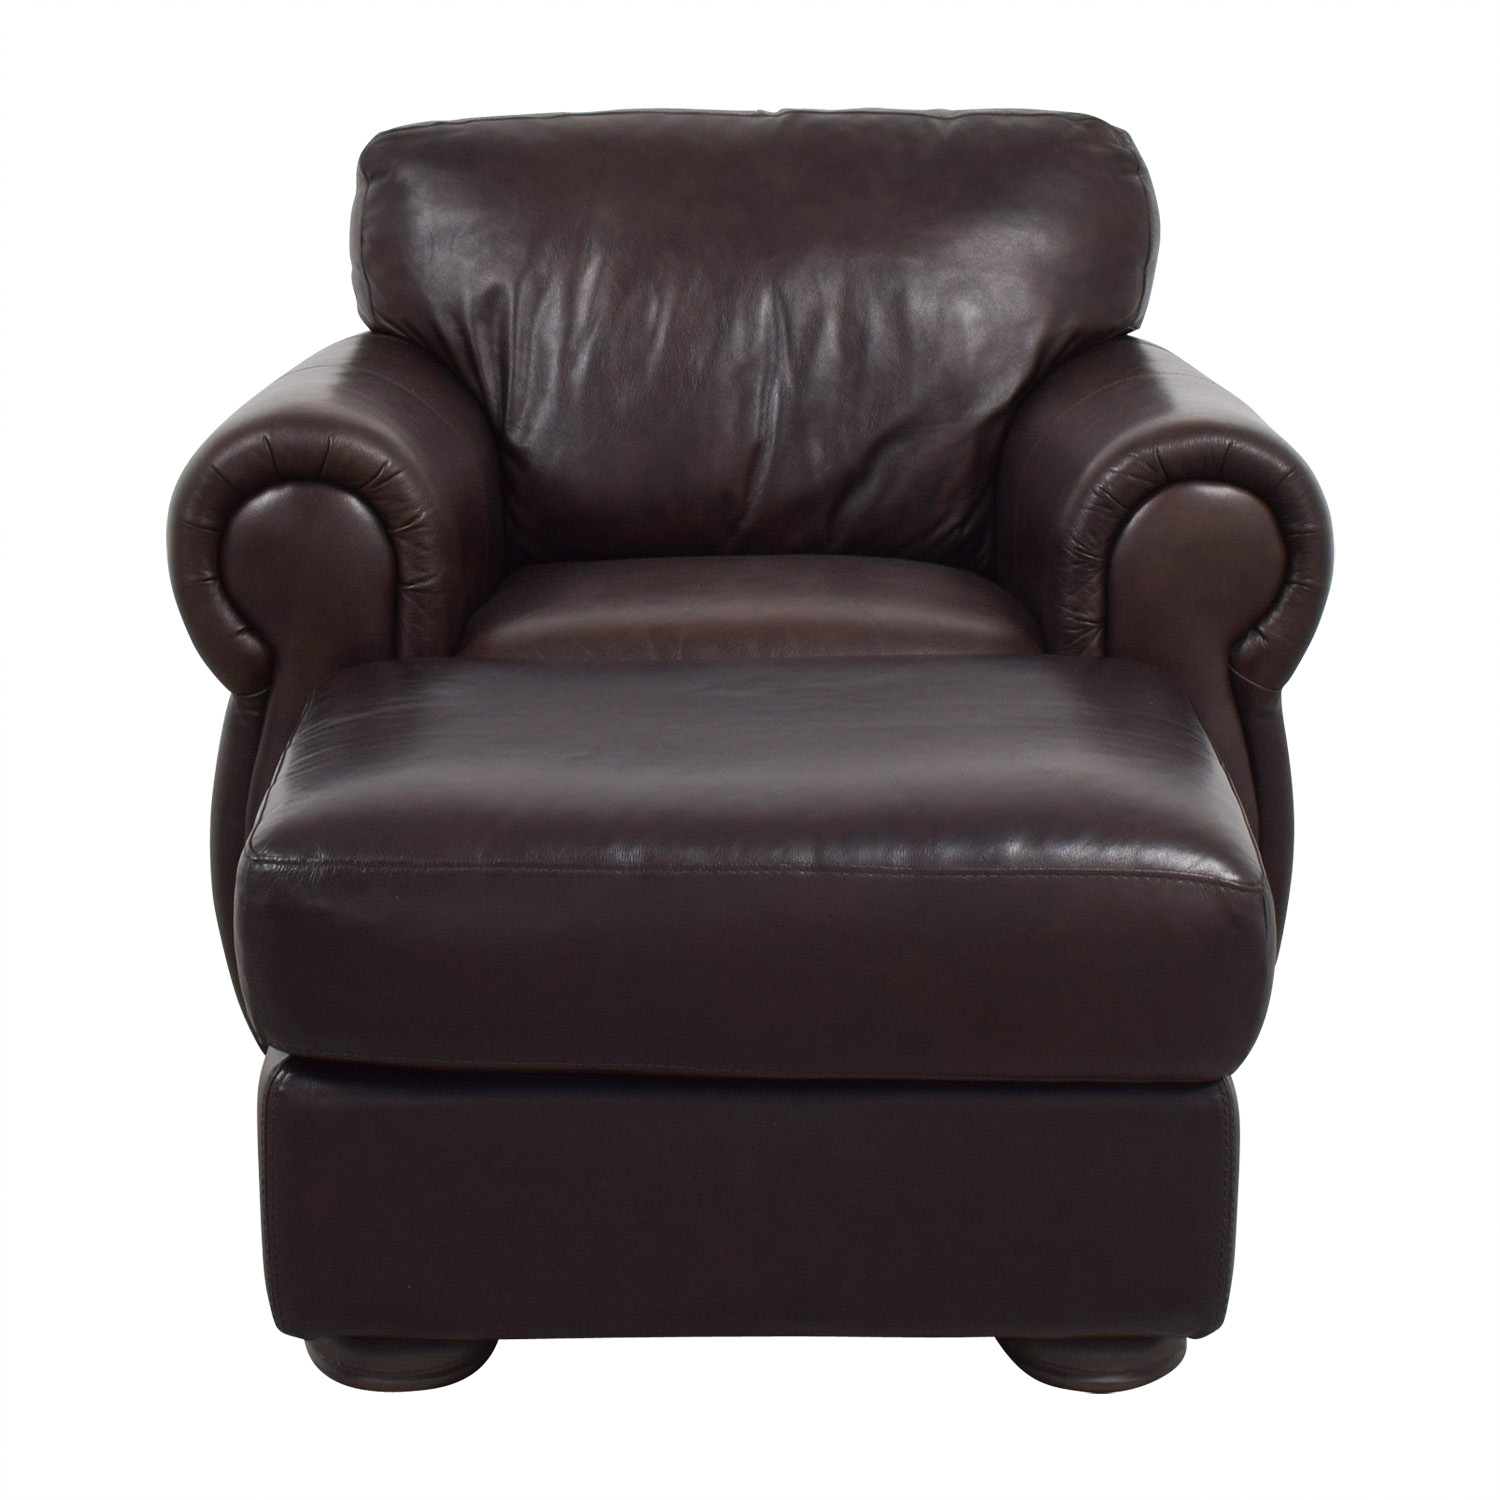 buy Raymour & Flanigan Brown Leather Chair and Ottoman Raymour & Flanigan